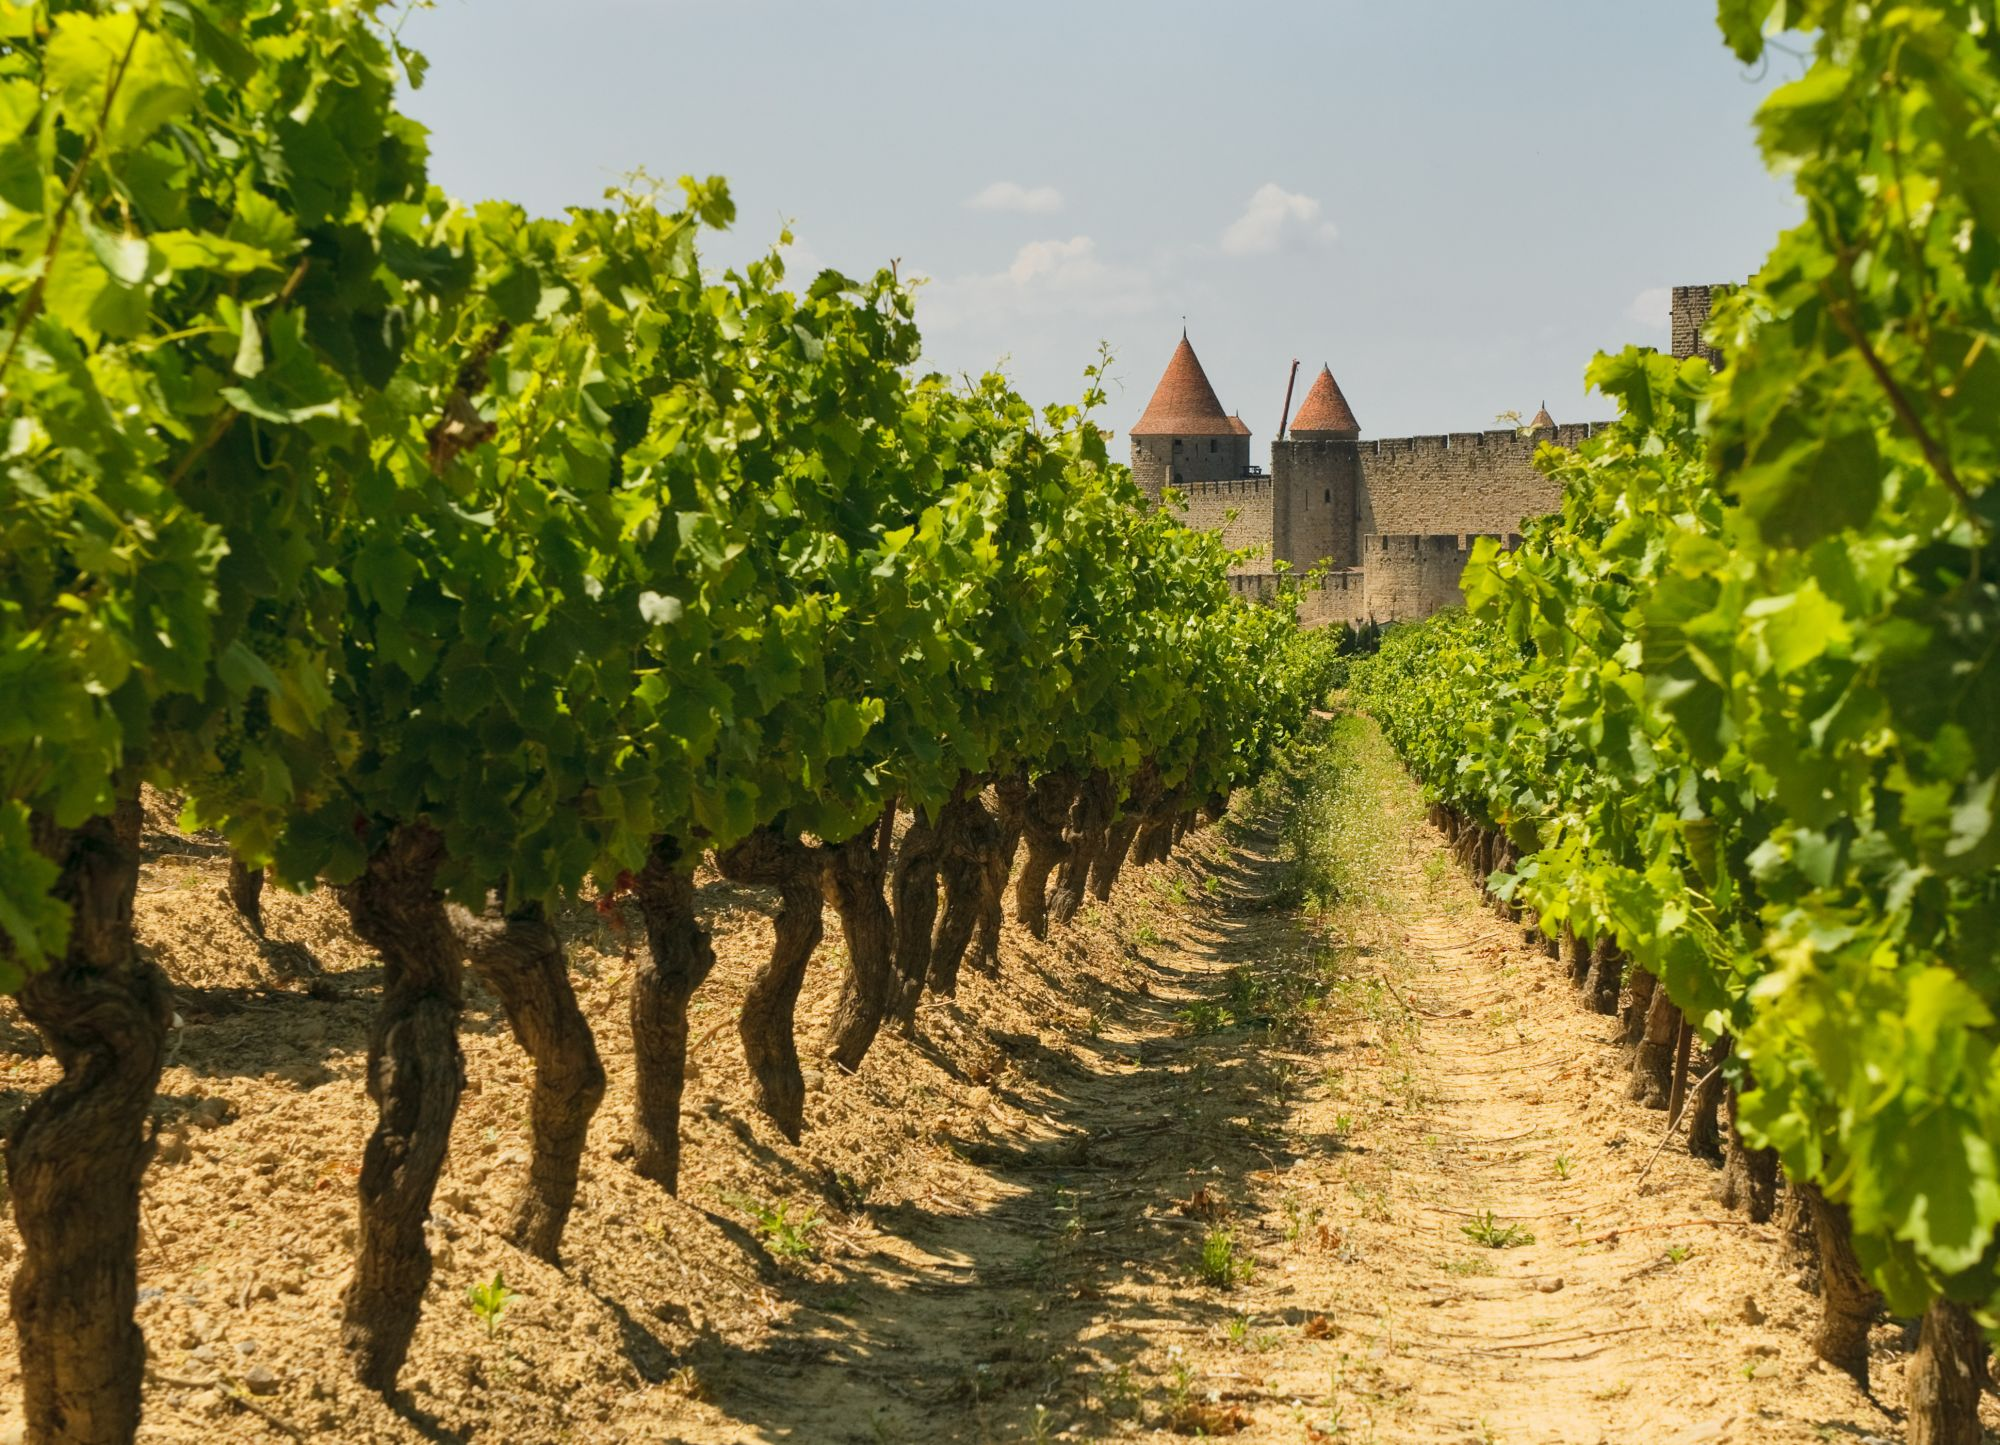 Munich, Salzburg & Vienna Discovery Tours 2019 - 2020 -  vineyard landscape of vineyards in medieval town of carcassonne